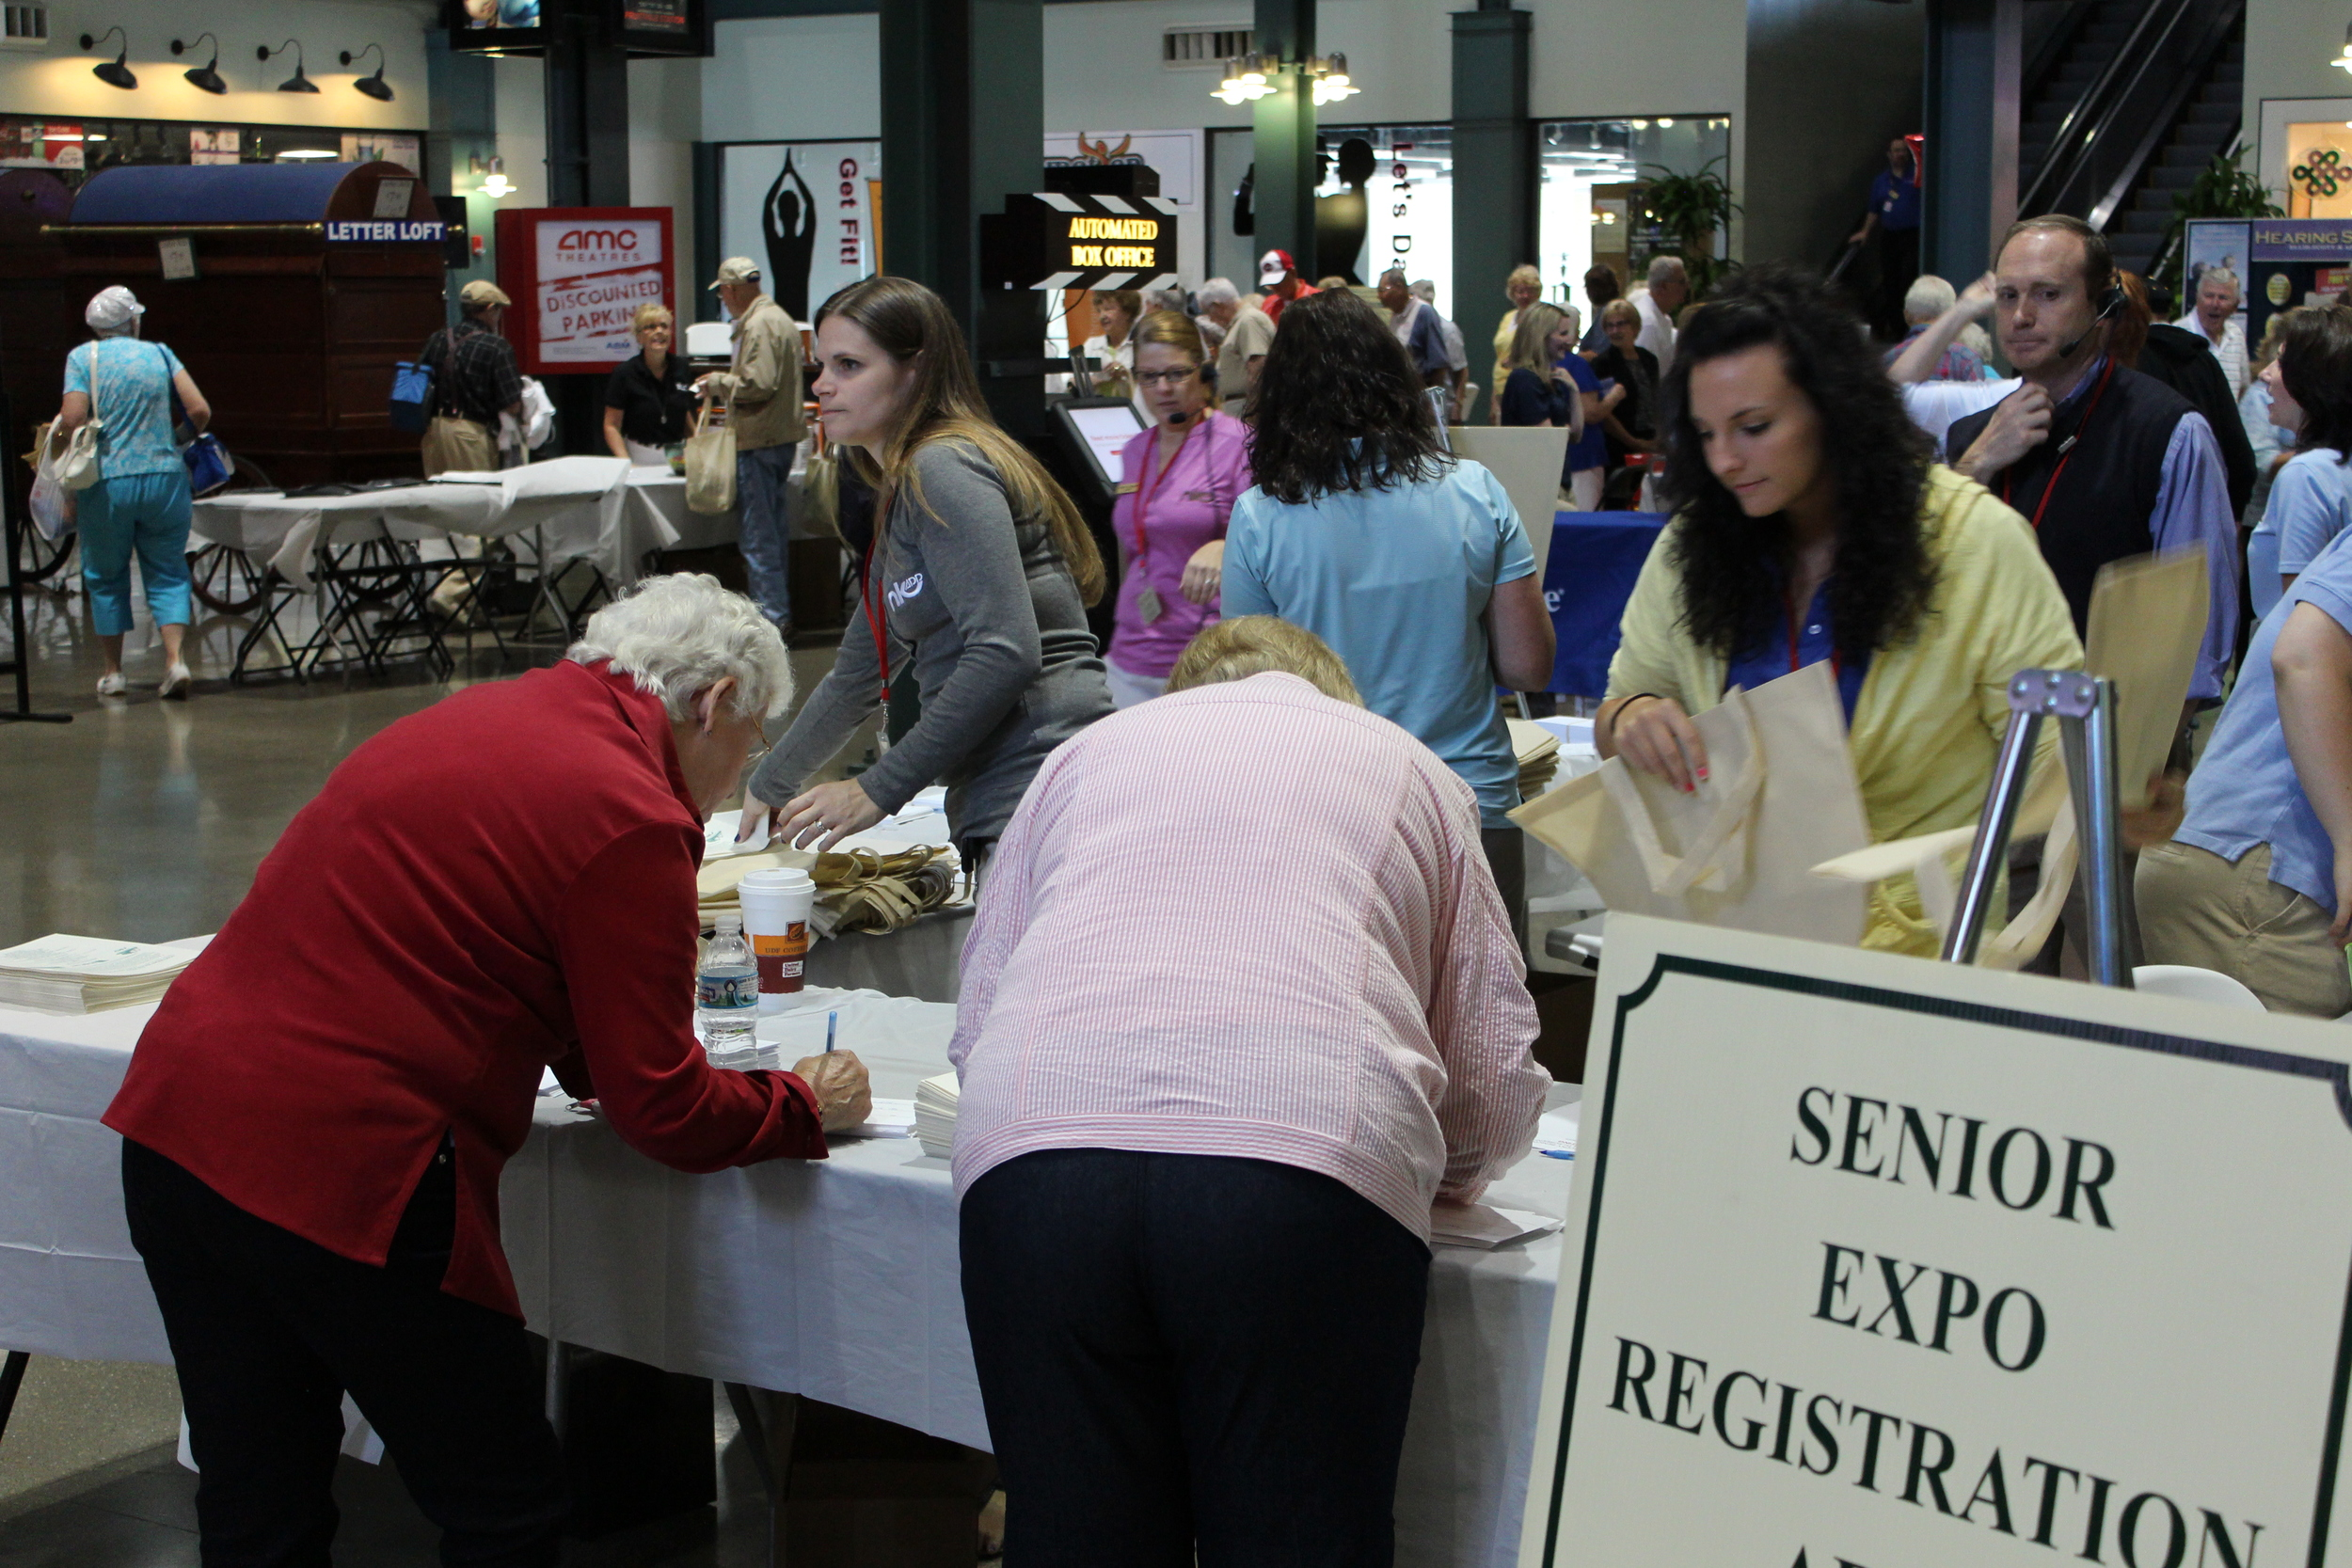 Each year the NKADD organizes the Senior Expo to bring resources to the senior population of Northern Kentucky.  NKADD Case Manager Jeri Riley volunteered her time at the 2013 Senior Expo to register participants.  This year's event was the biggest in its history with over 1,600 attendees.  Photo credit: NKADD